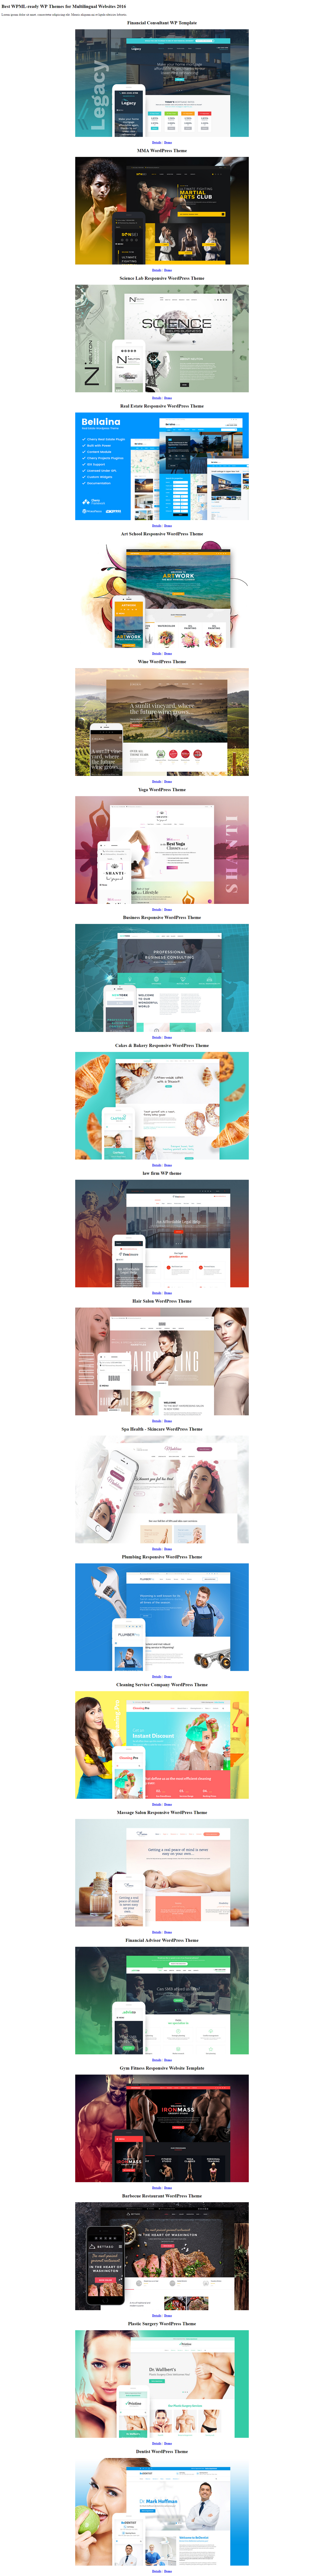 Best-WPML-ready-WP-Themes-for-Multilingual-Websites-2016